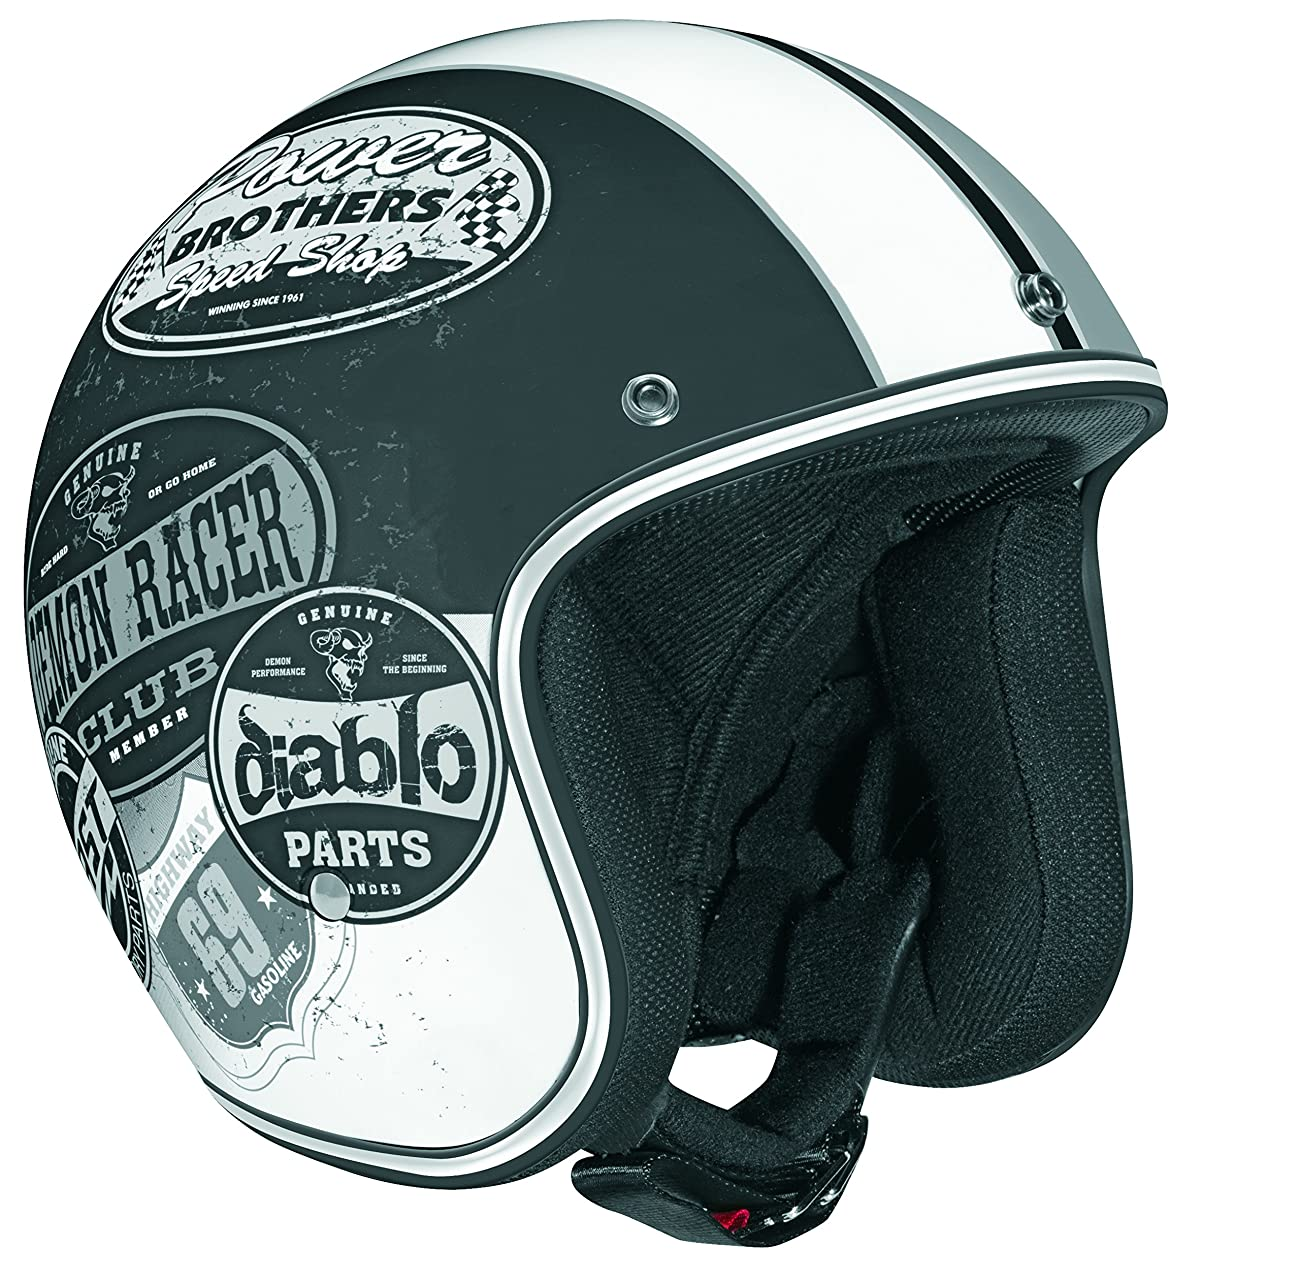 Vega X-380 Open Face Helmet with Old Skool Graphic (Flat Black/Monochrome, Medium) 0